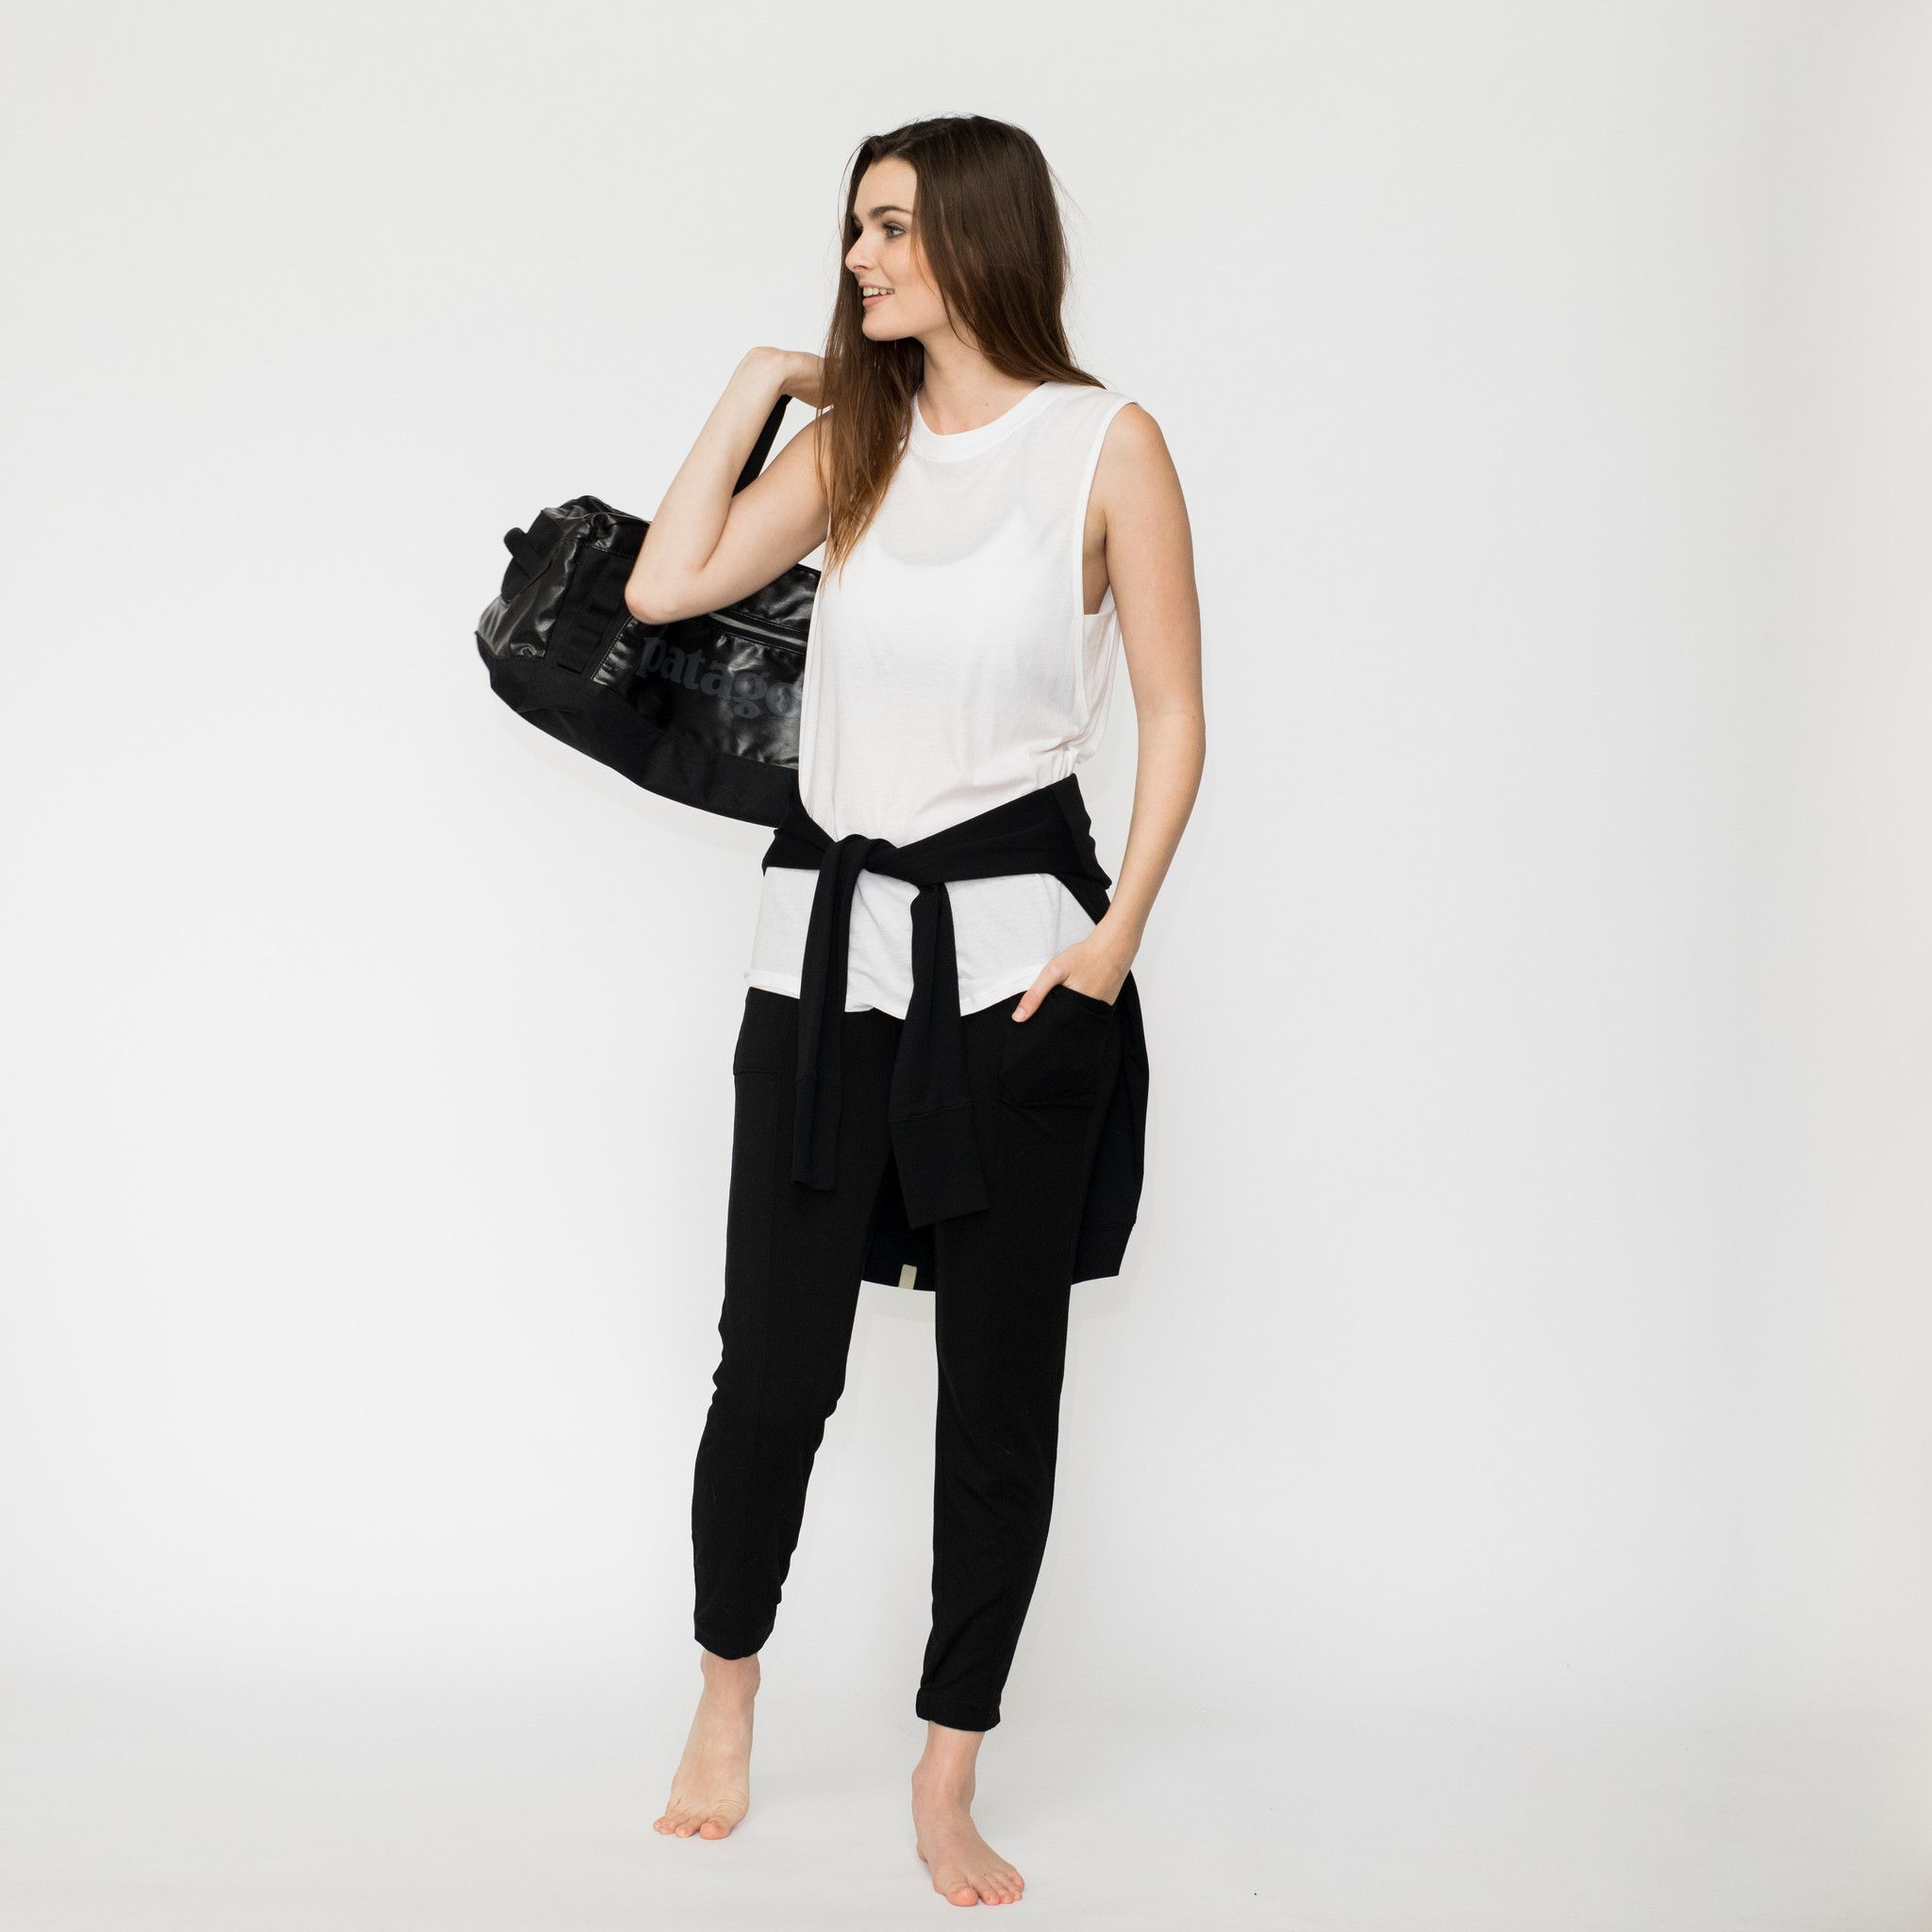 Restore Travel Kit Clothes, Sleepwear women, Outfit sets